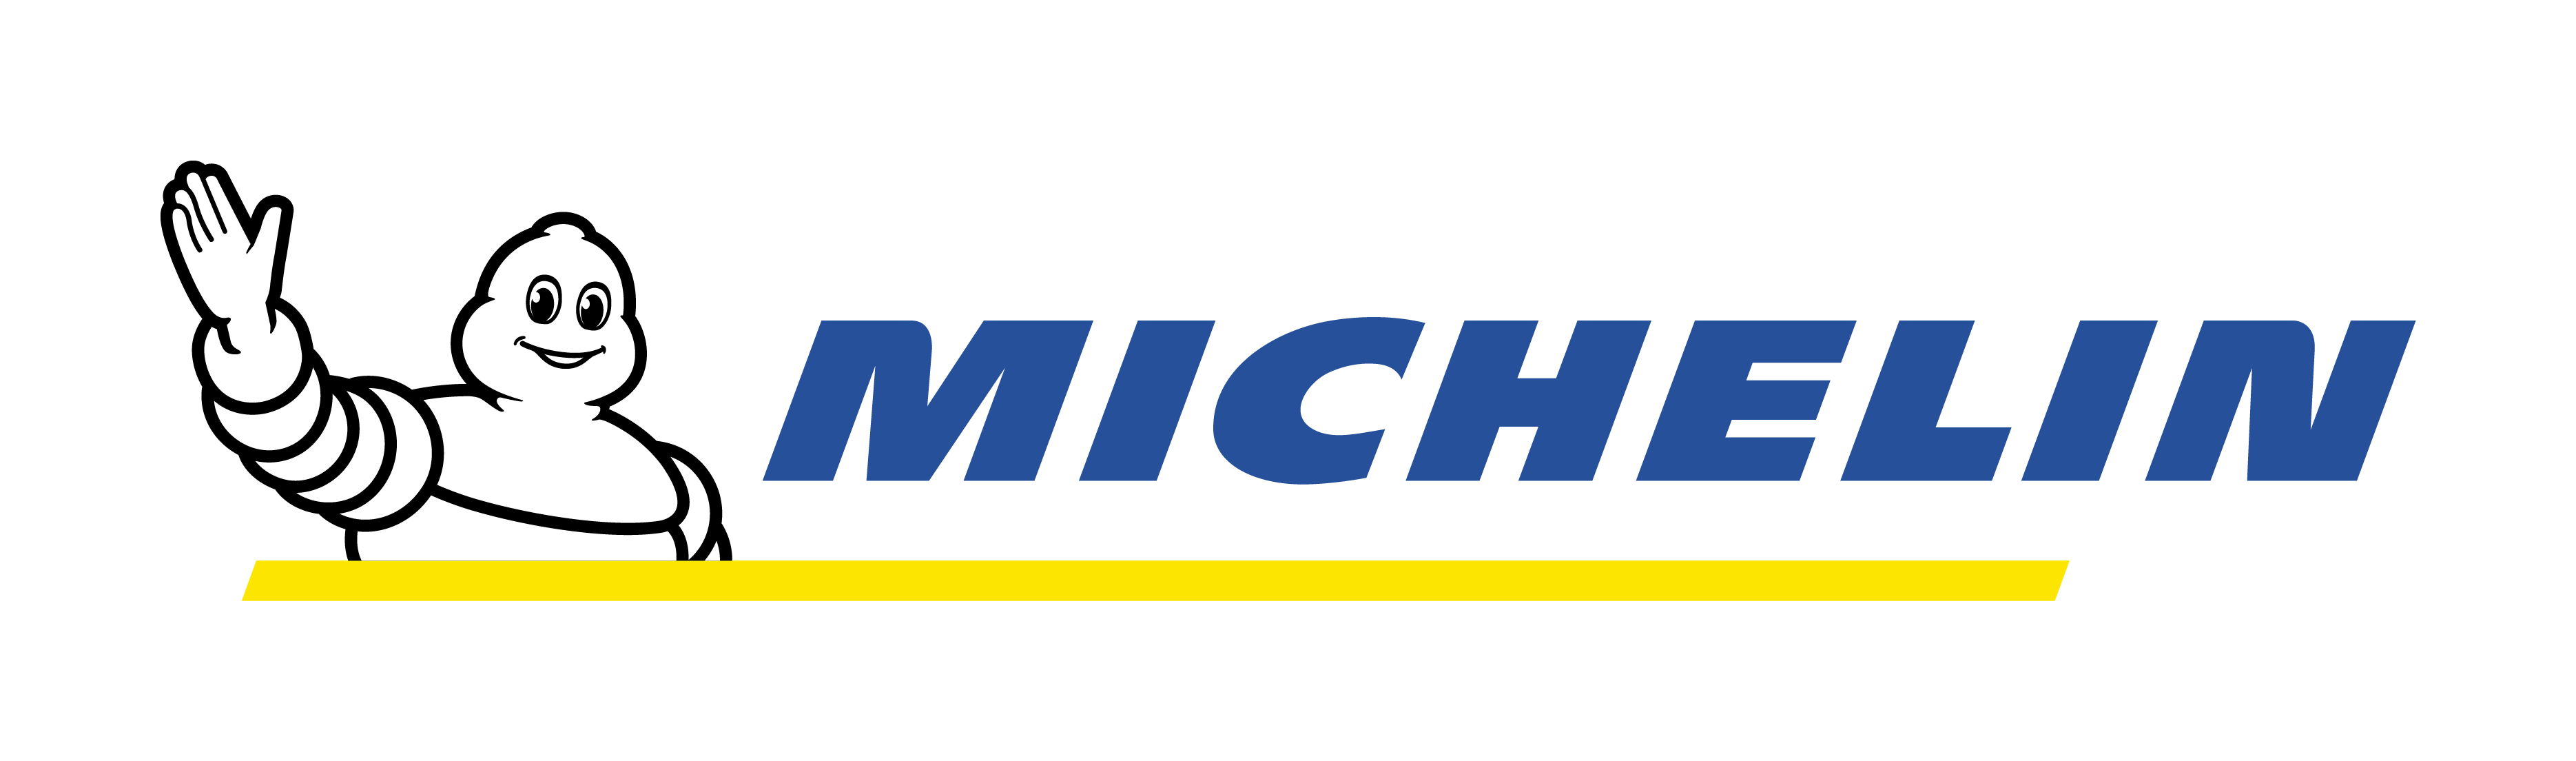 https://www.rc4wd.com/ProductImages/Logos/Michelin.png